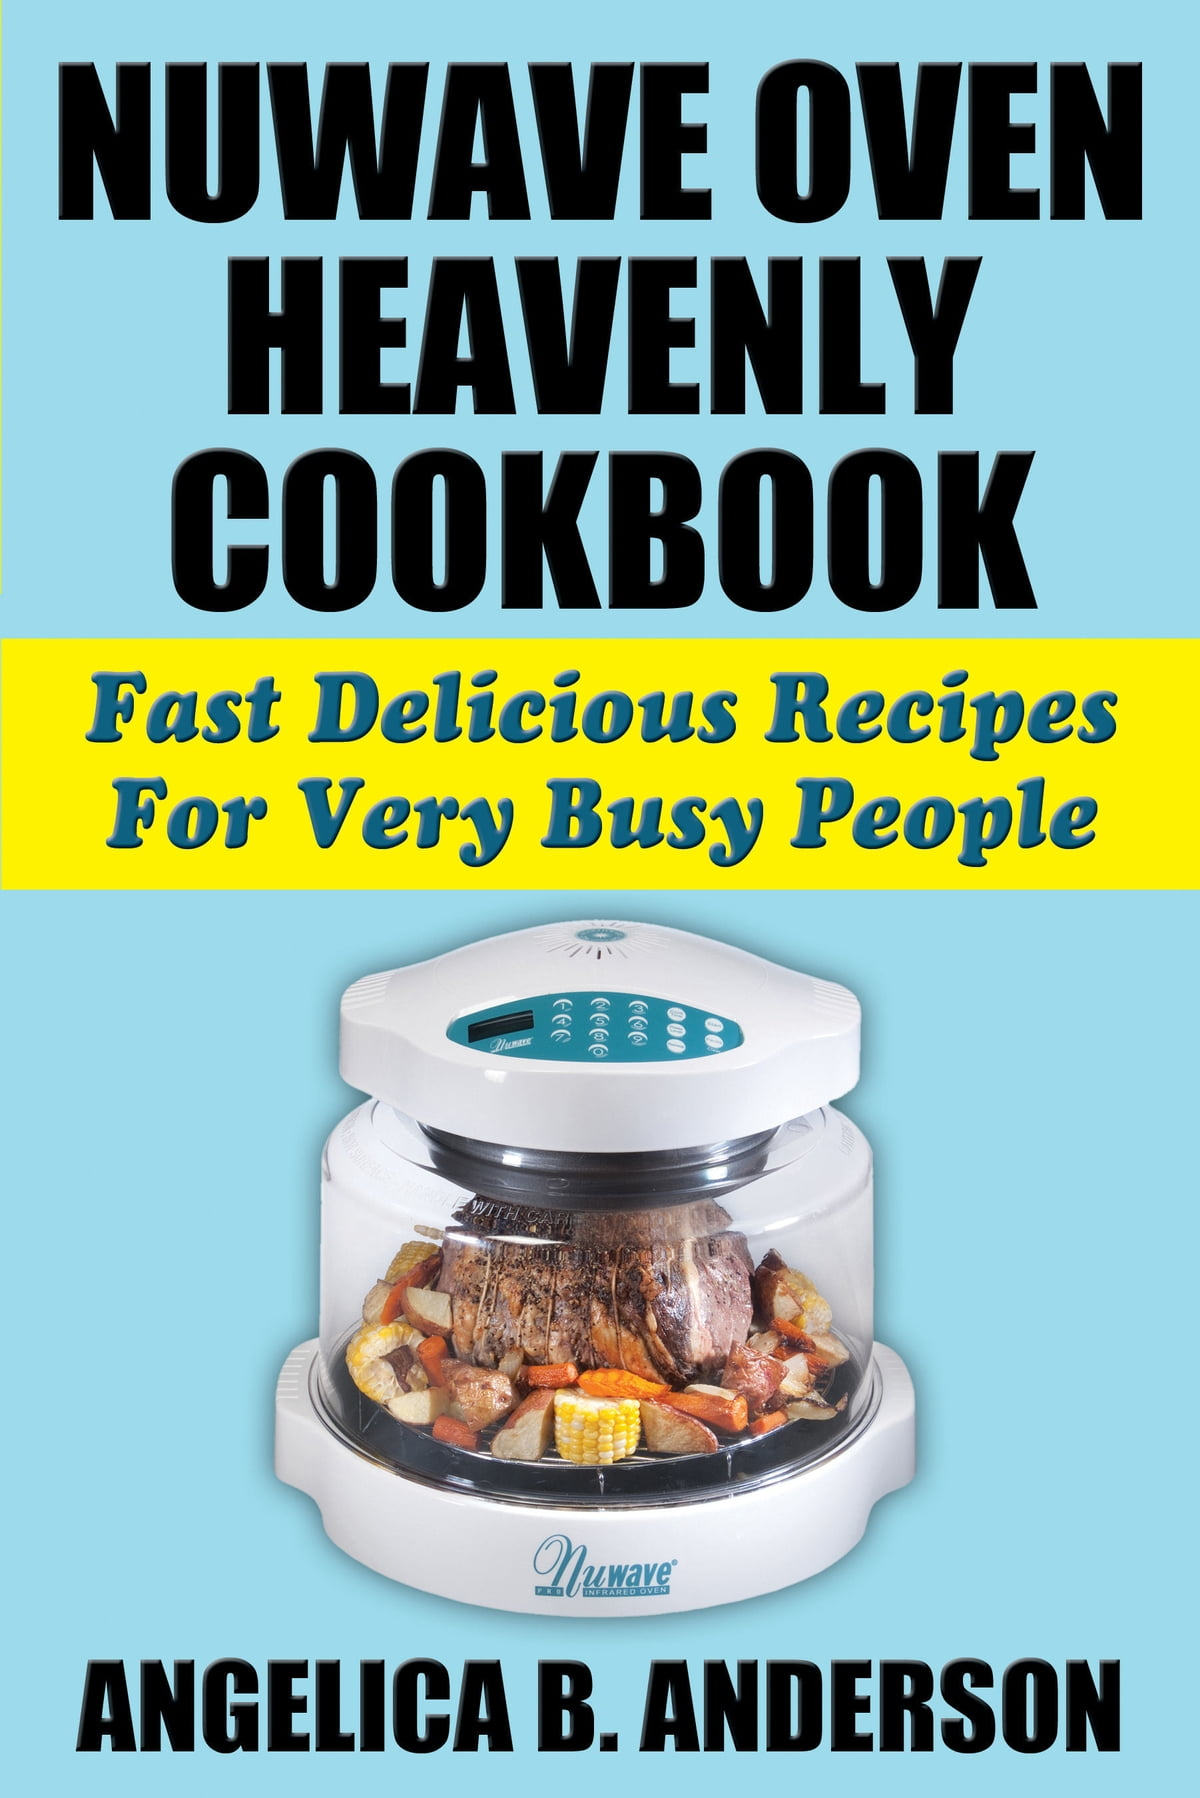 NuWave Oven Heavenly Cookbook: Fast Delicious Recipes For Very Busy People  eBook by Angelica Anderson | Rakuten Kobo